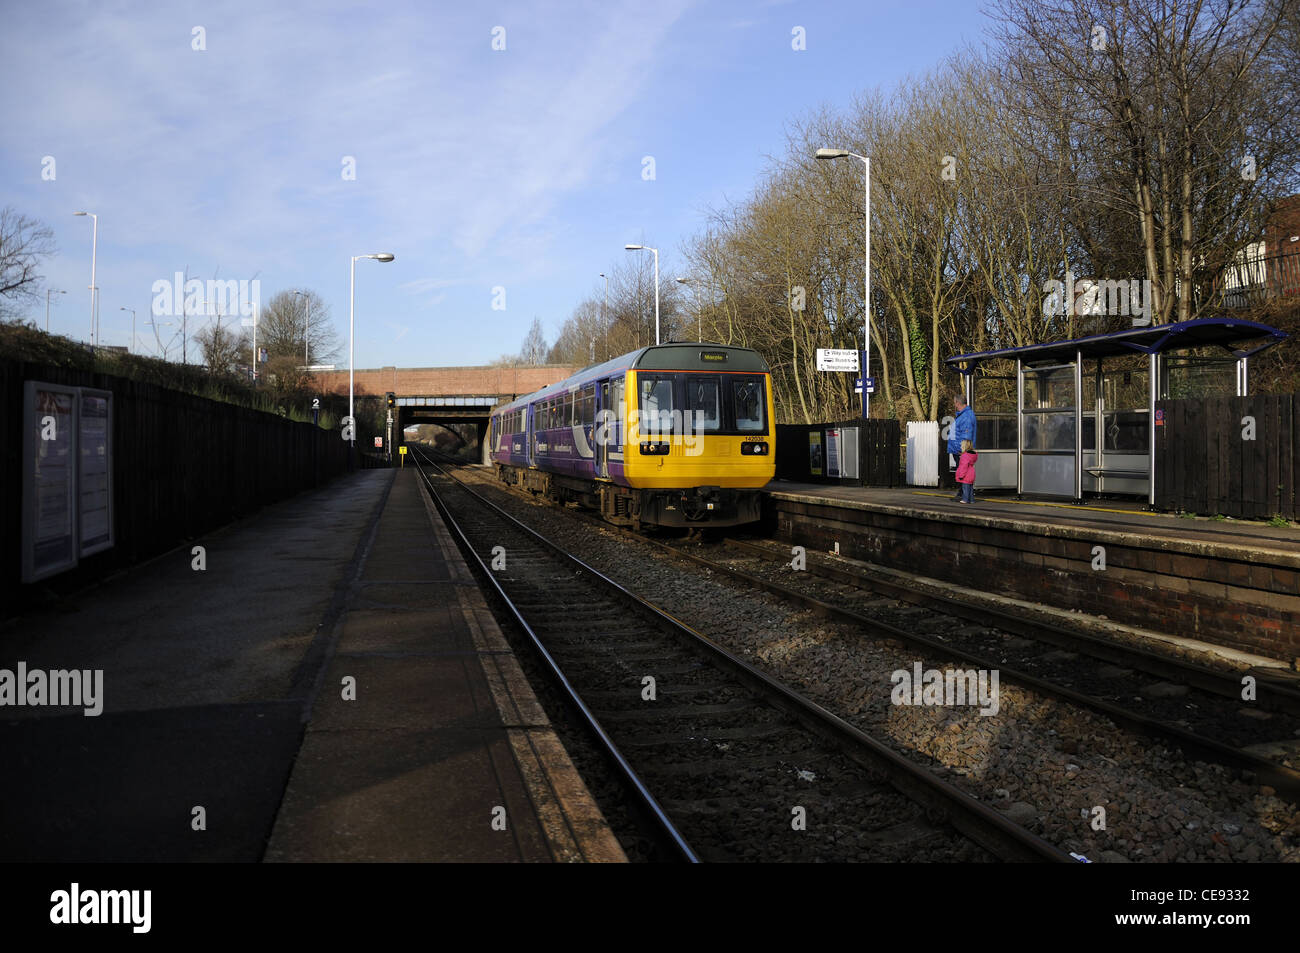 Northern Rail two car passenger train stopping at station for passengers - Stock Image